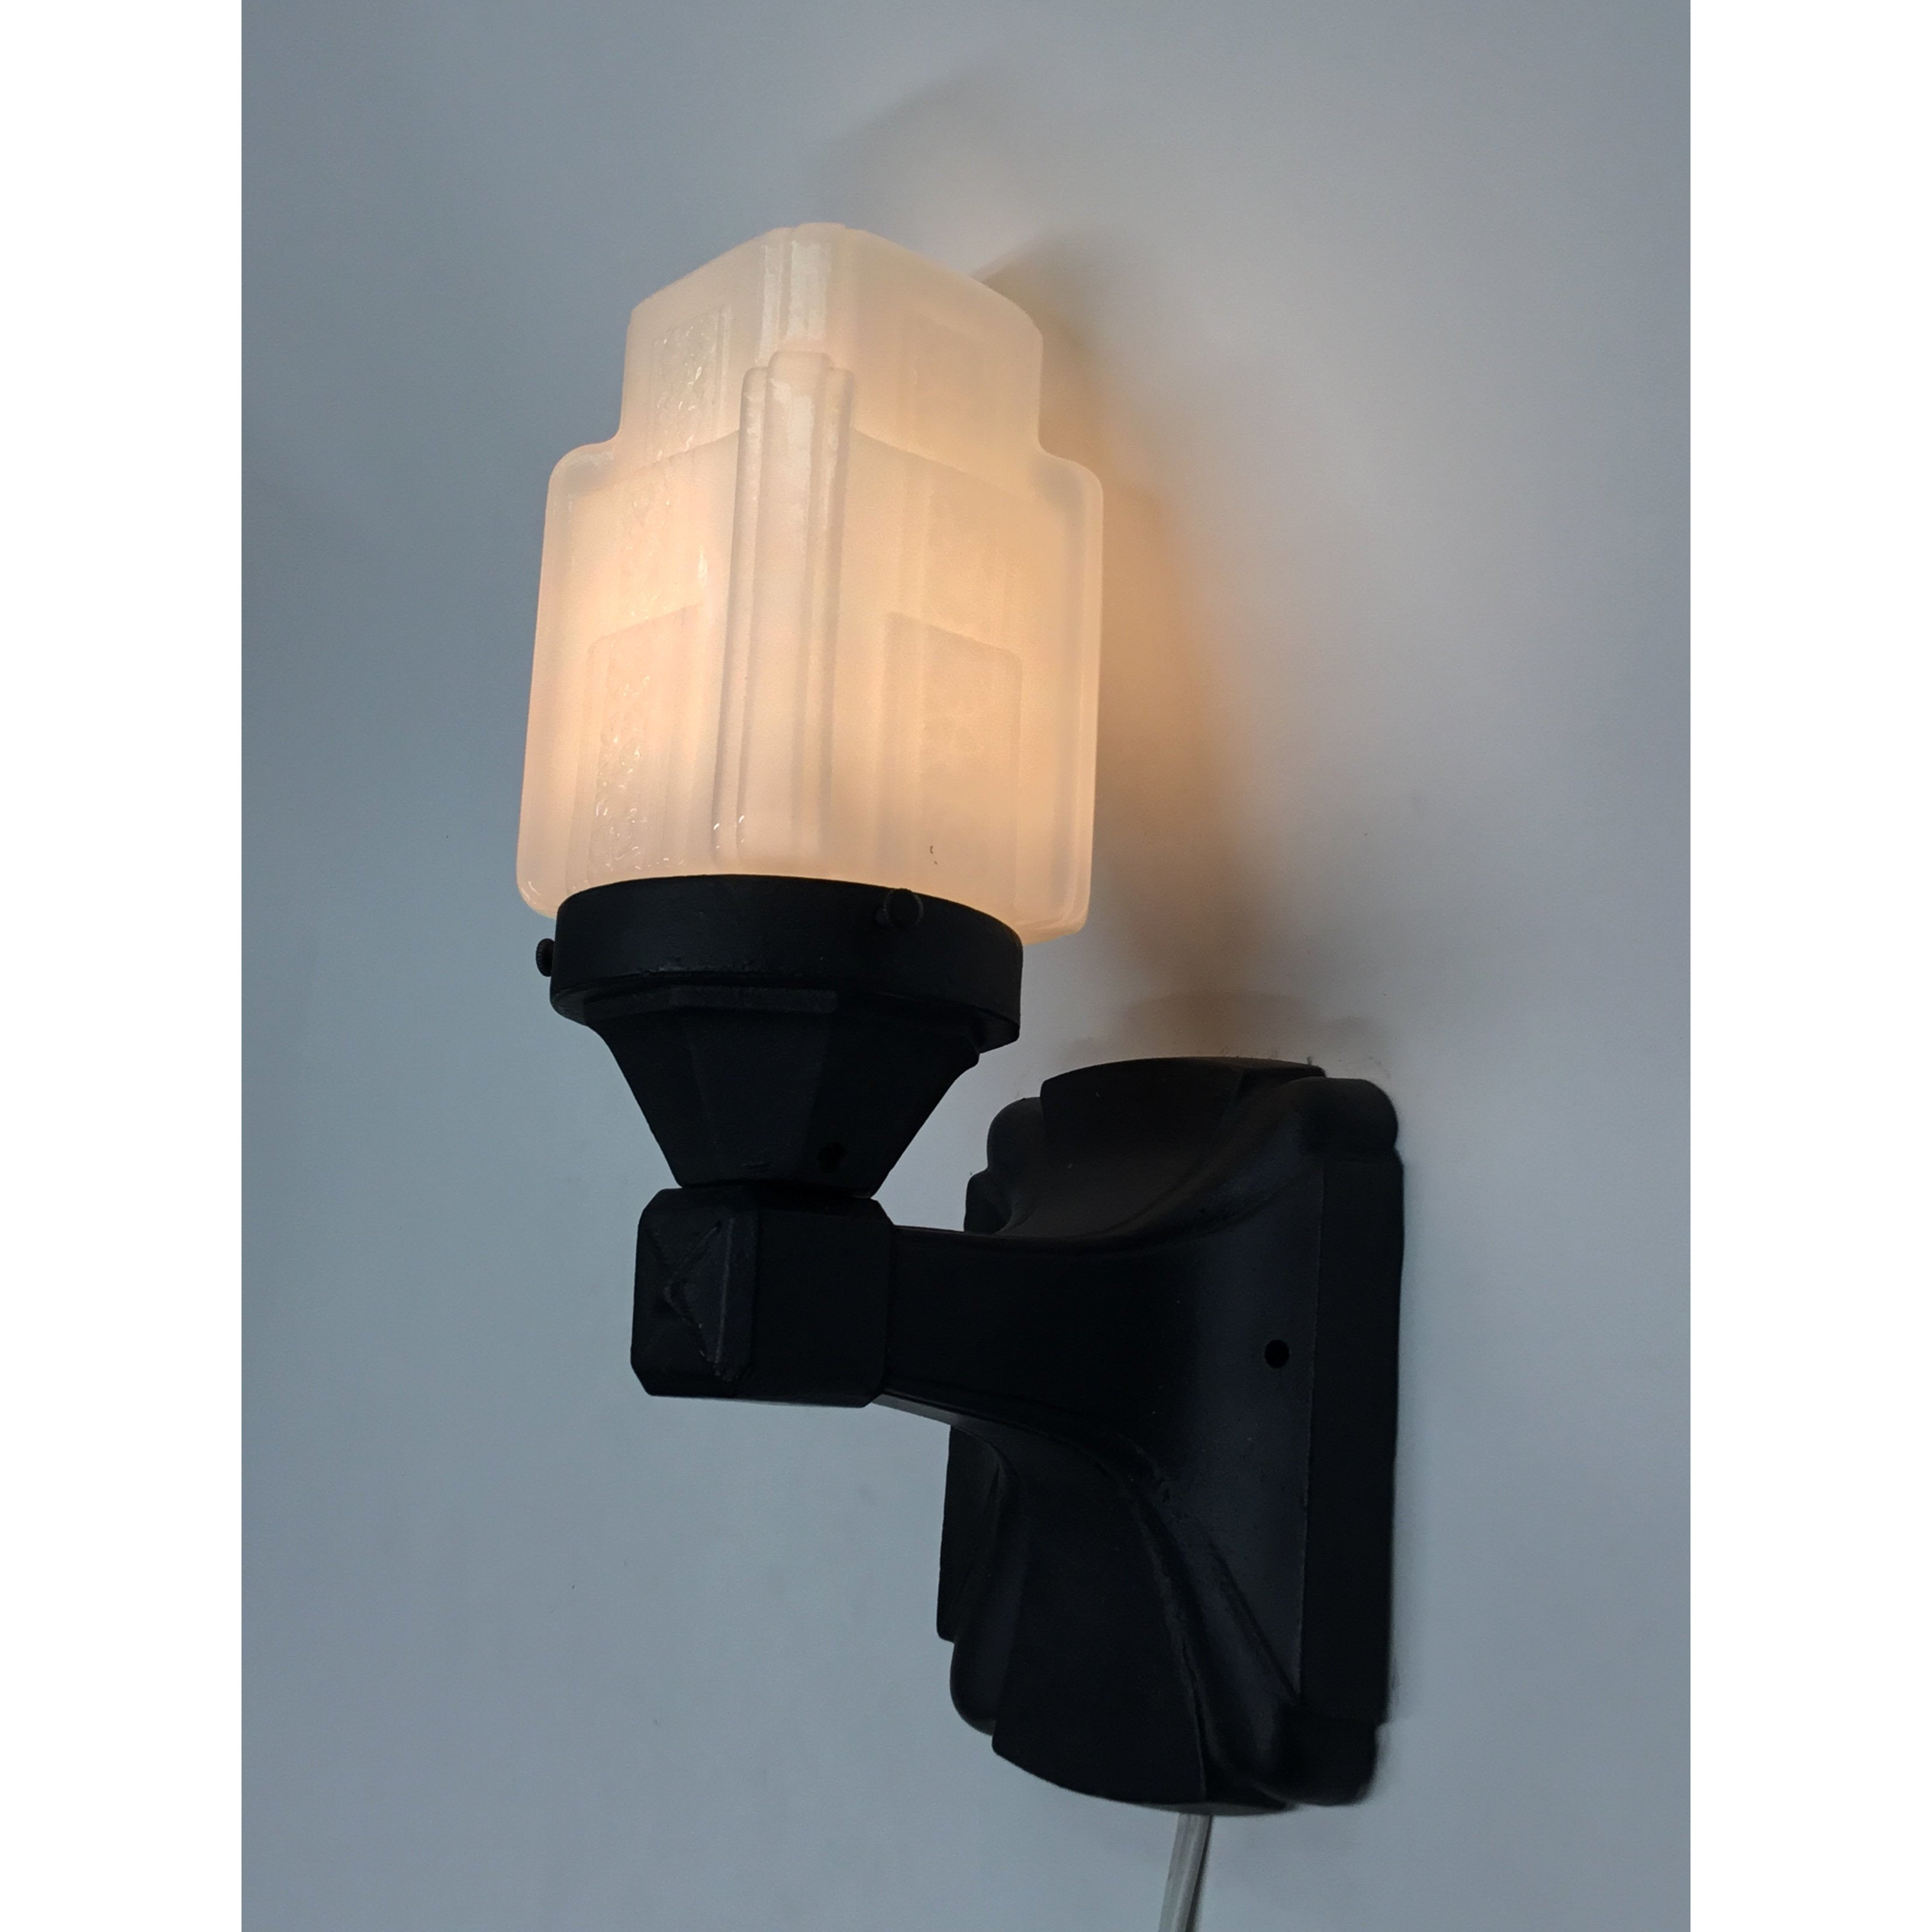 Porch Light with Art Deco Shade #2006 - Filament Vintage Lighting